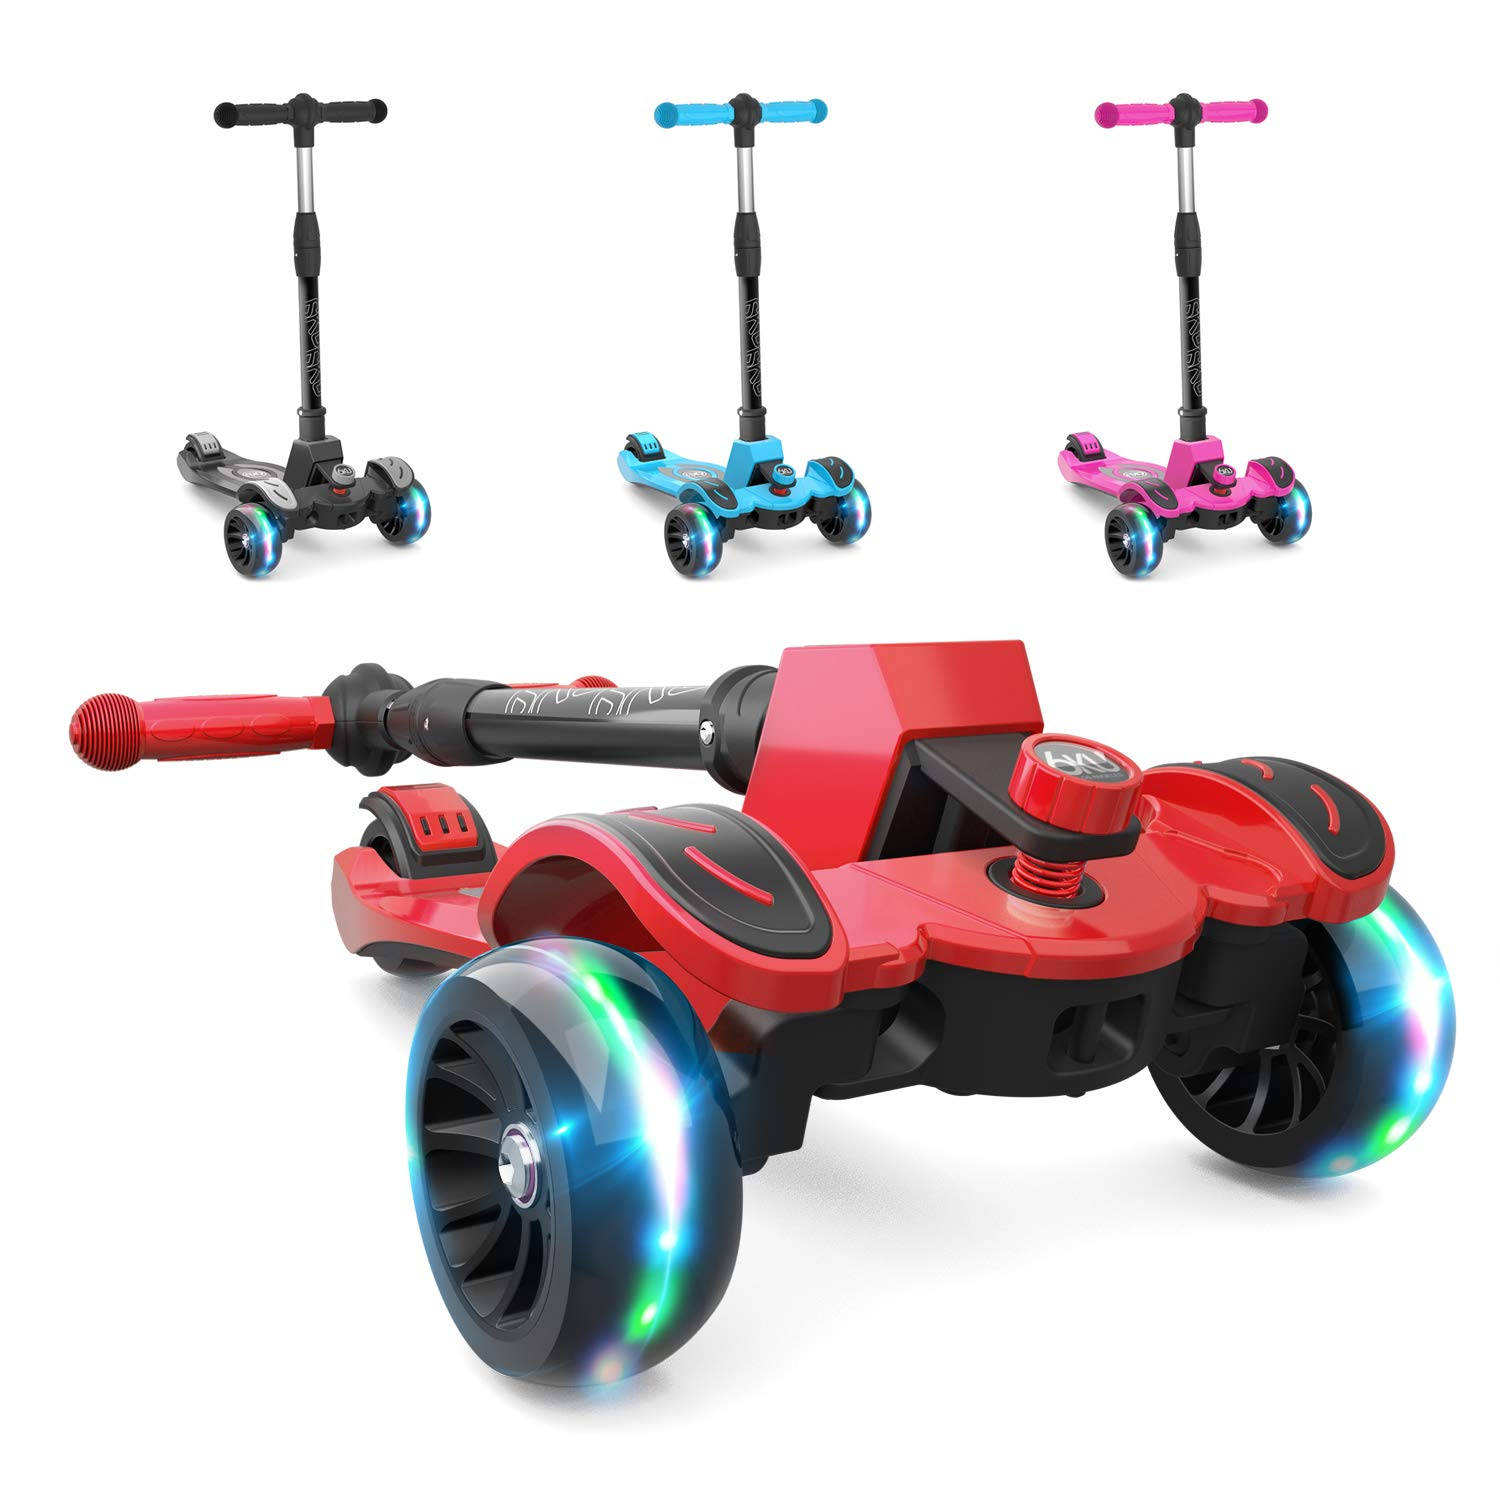 6KU Kick Scooter for Kids & Toddlers Girls or Boys with Adjustable Height, Lean to Steer, Flashing Wheels for Toy Children 3-8 Years Old Red by 6KU (Image #1)